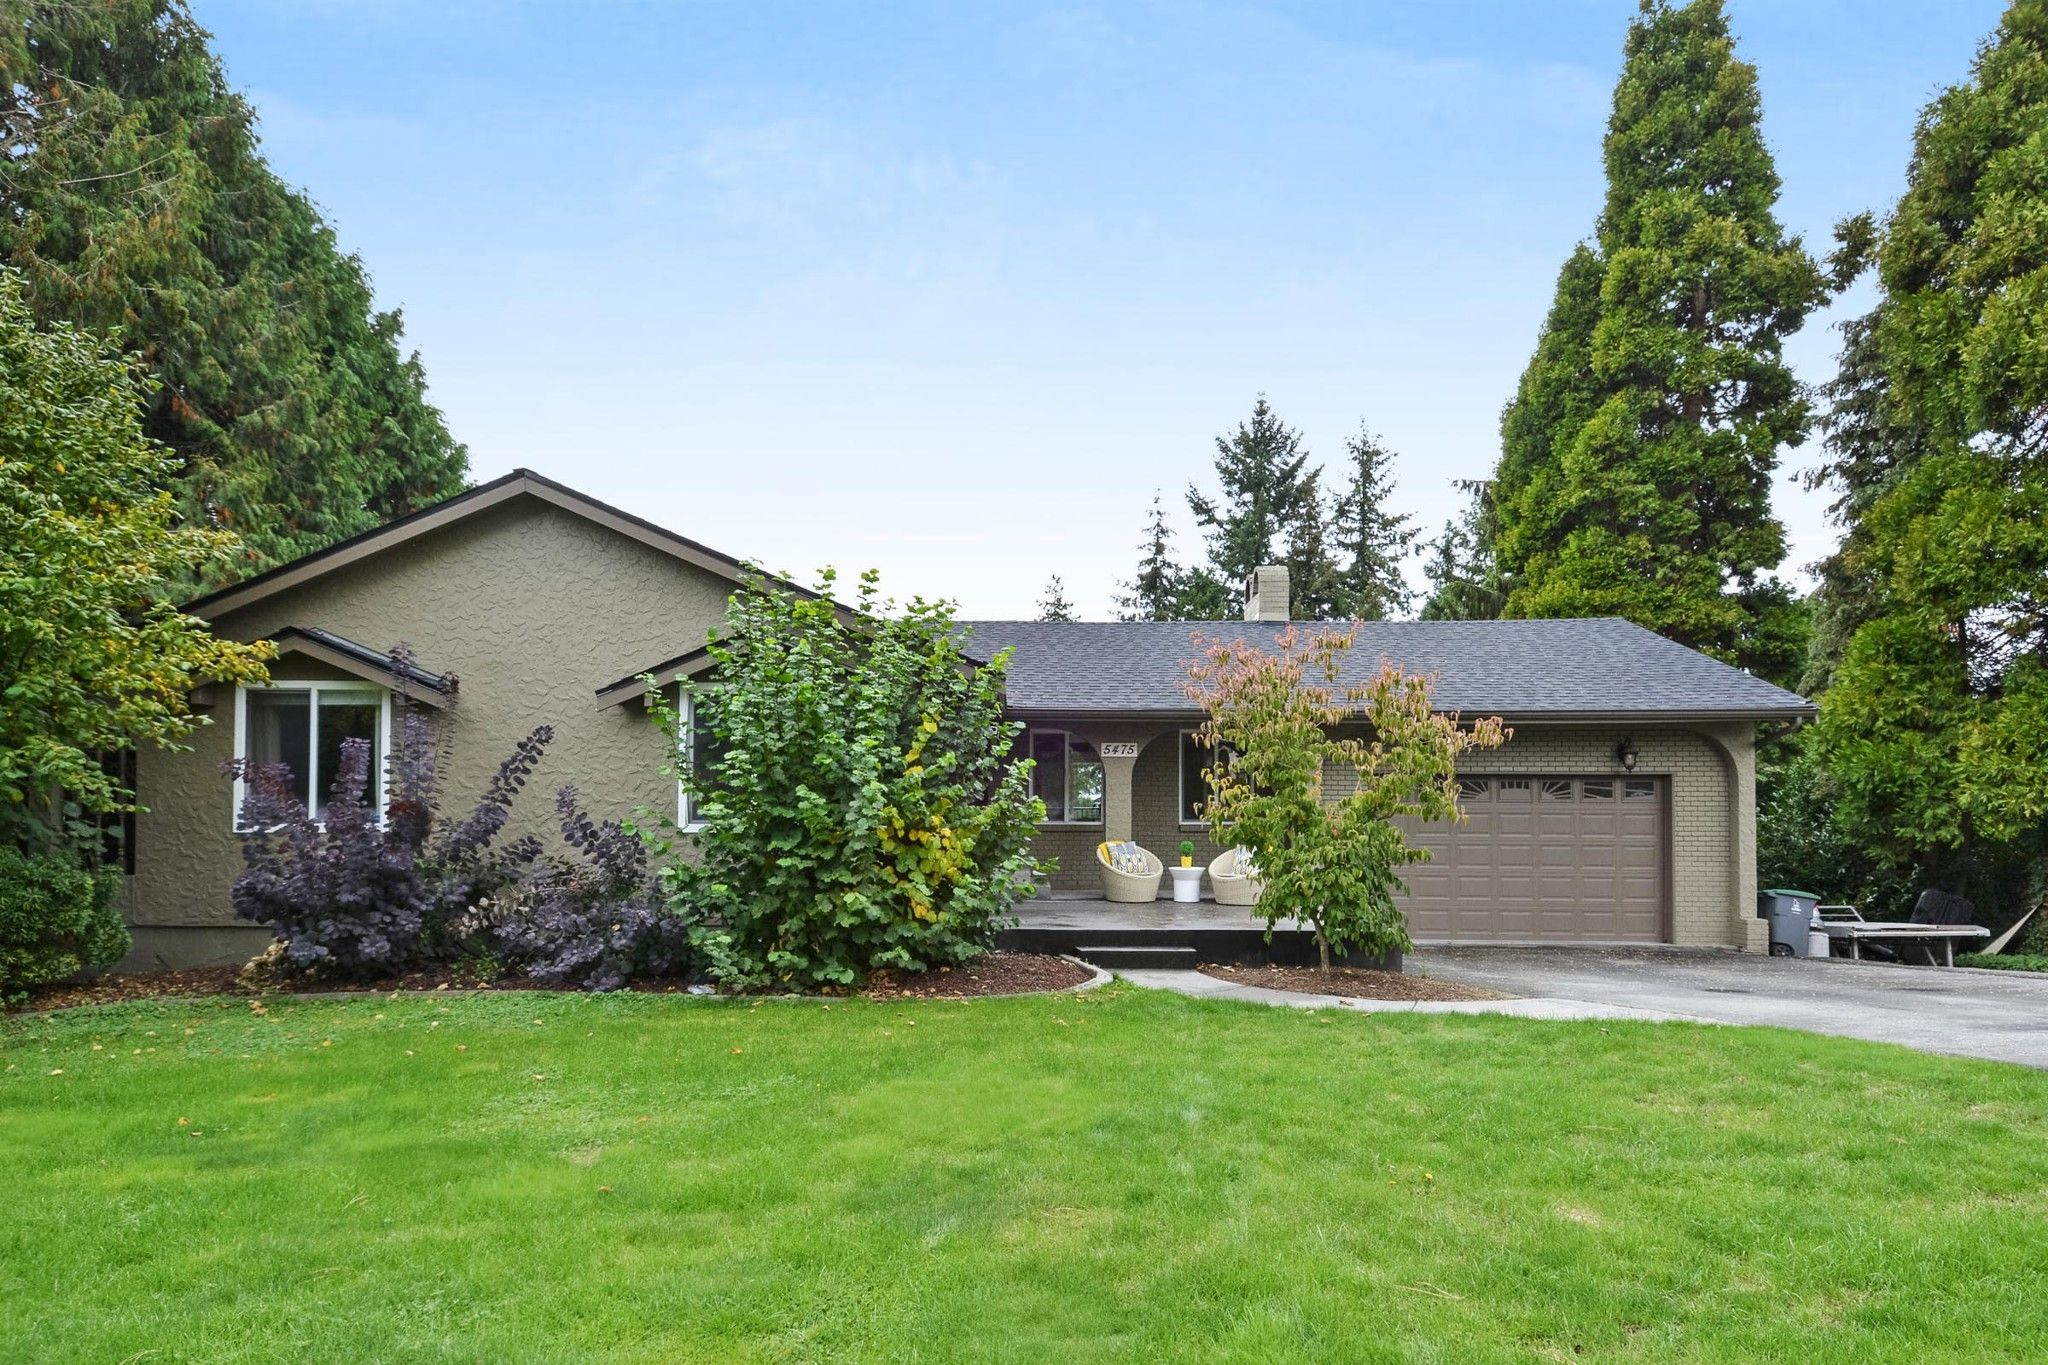 Main Photo: 5475 BAKERVIEW Drive in Surrey: Sullivan Station House for sale : MLS®# R2313482